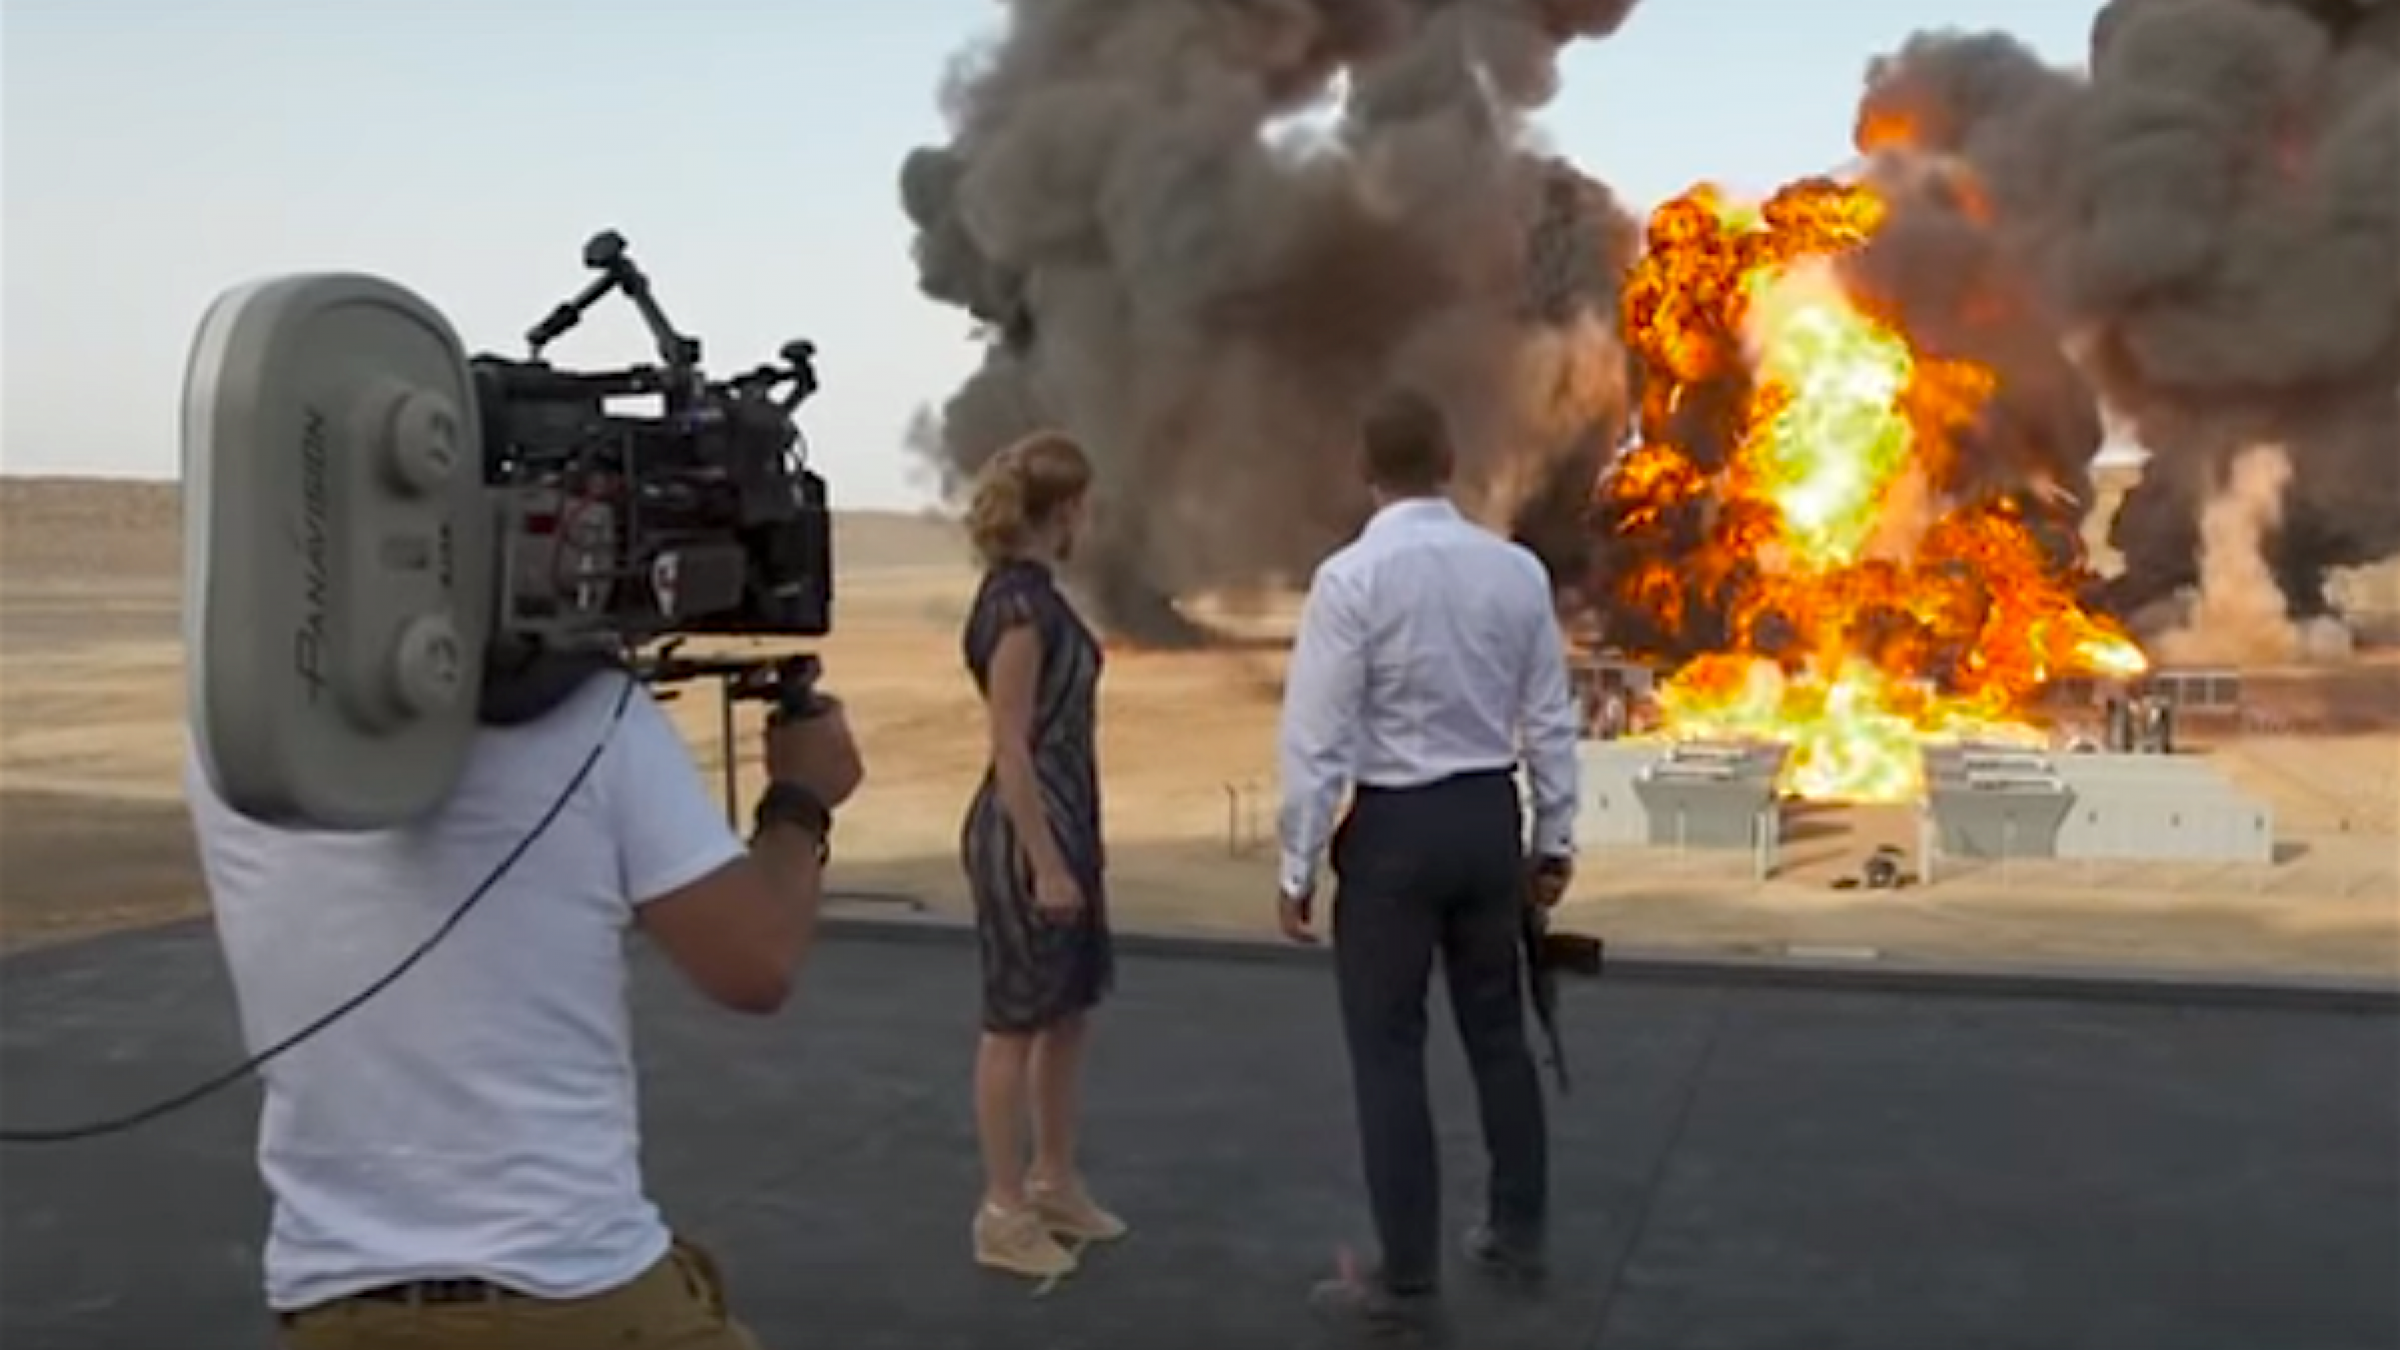 The new james bond film set the world record for biggest movie explosion ever